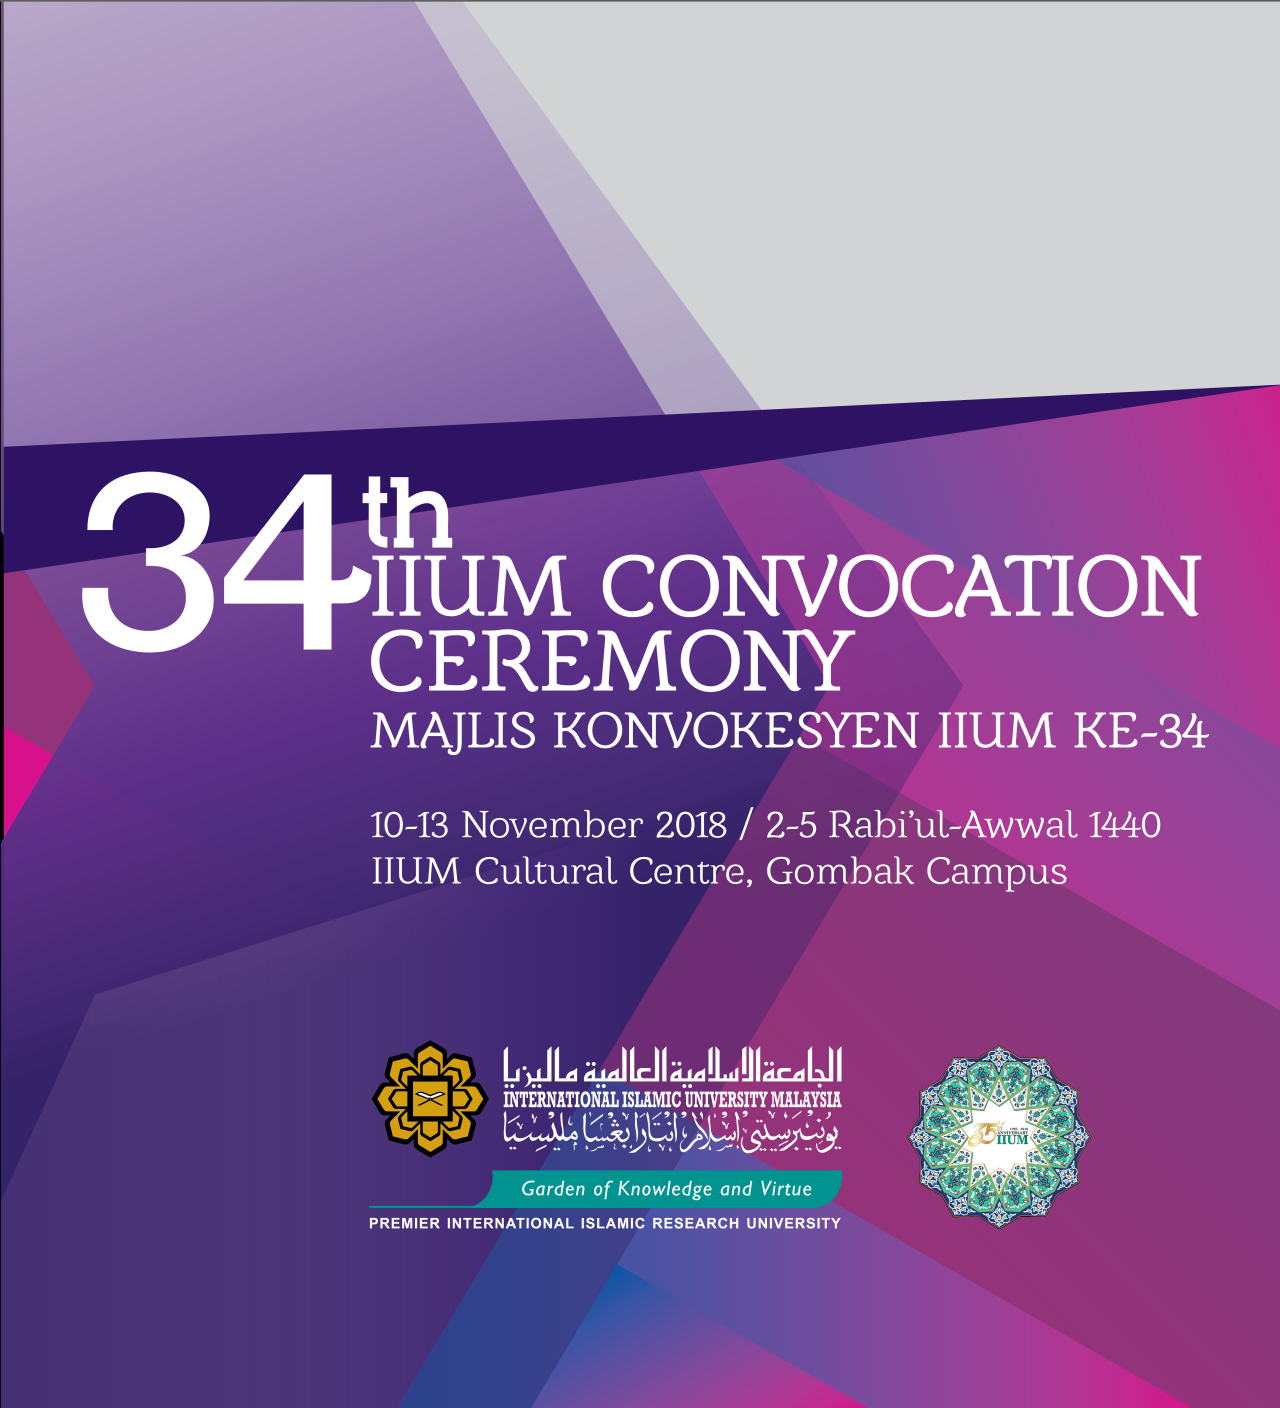 IIUM 34th Convocation